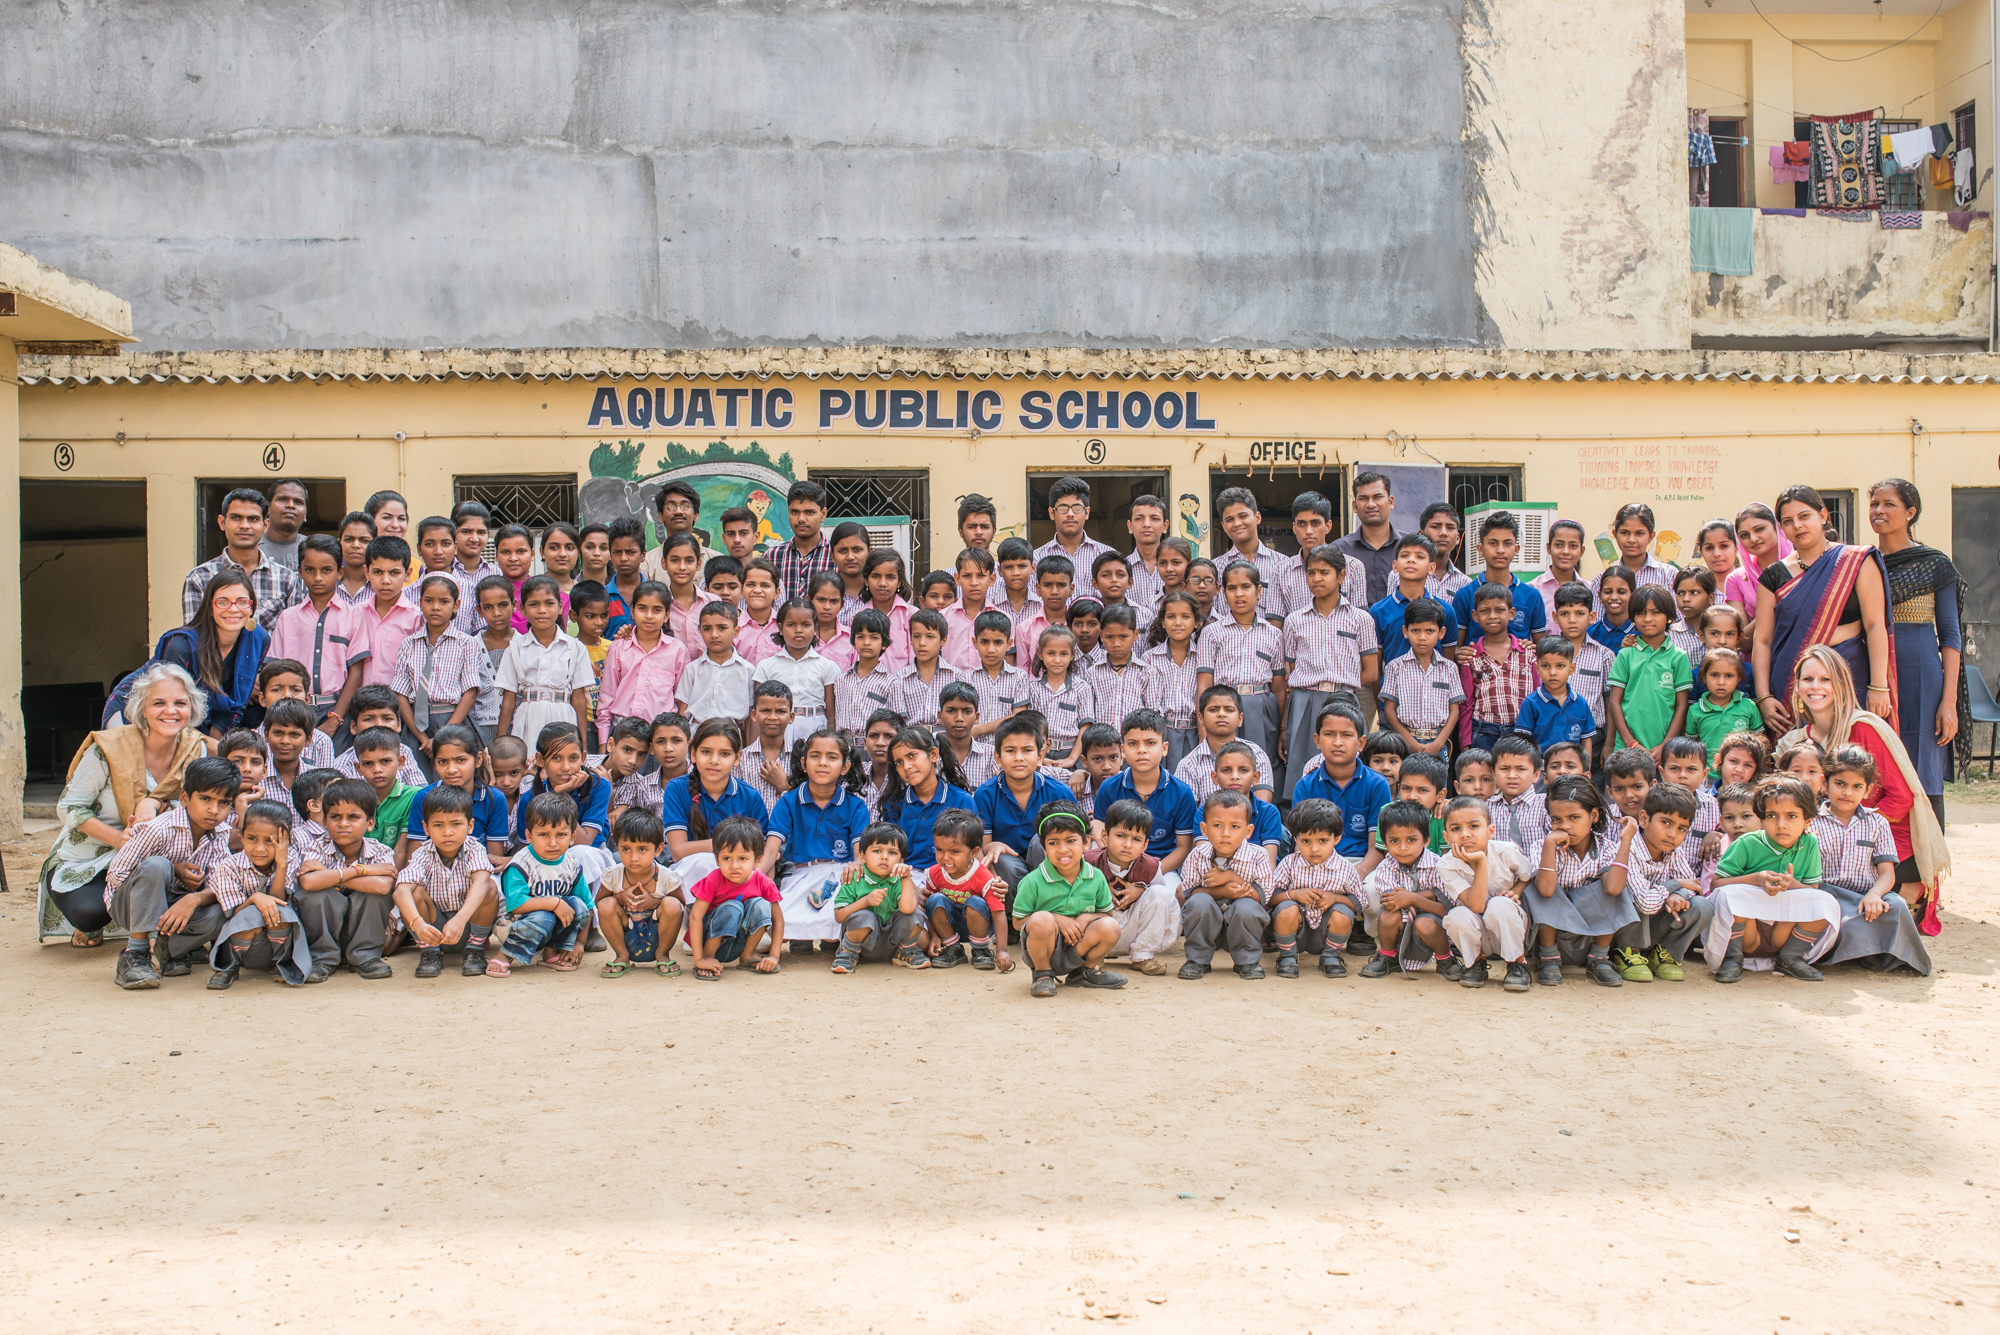 Located in close proximity to our hub offices in the National Capital Region of India, Aquatic Public School is home to 150 precious children. Upon getting to know some of the faculty, we found an opportunity to partner with the school, offering skills from classroom management to how to get more water access to the school's facilities!